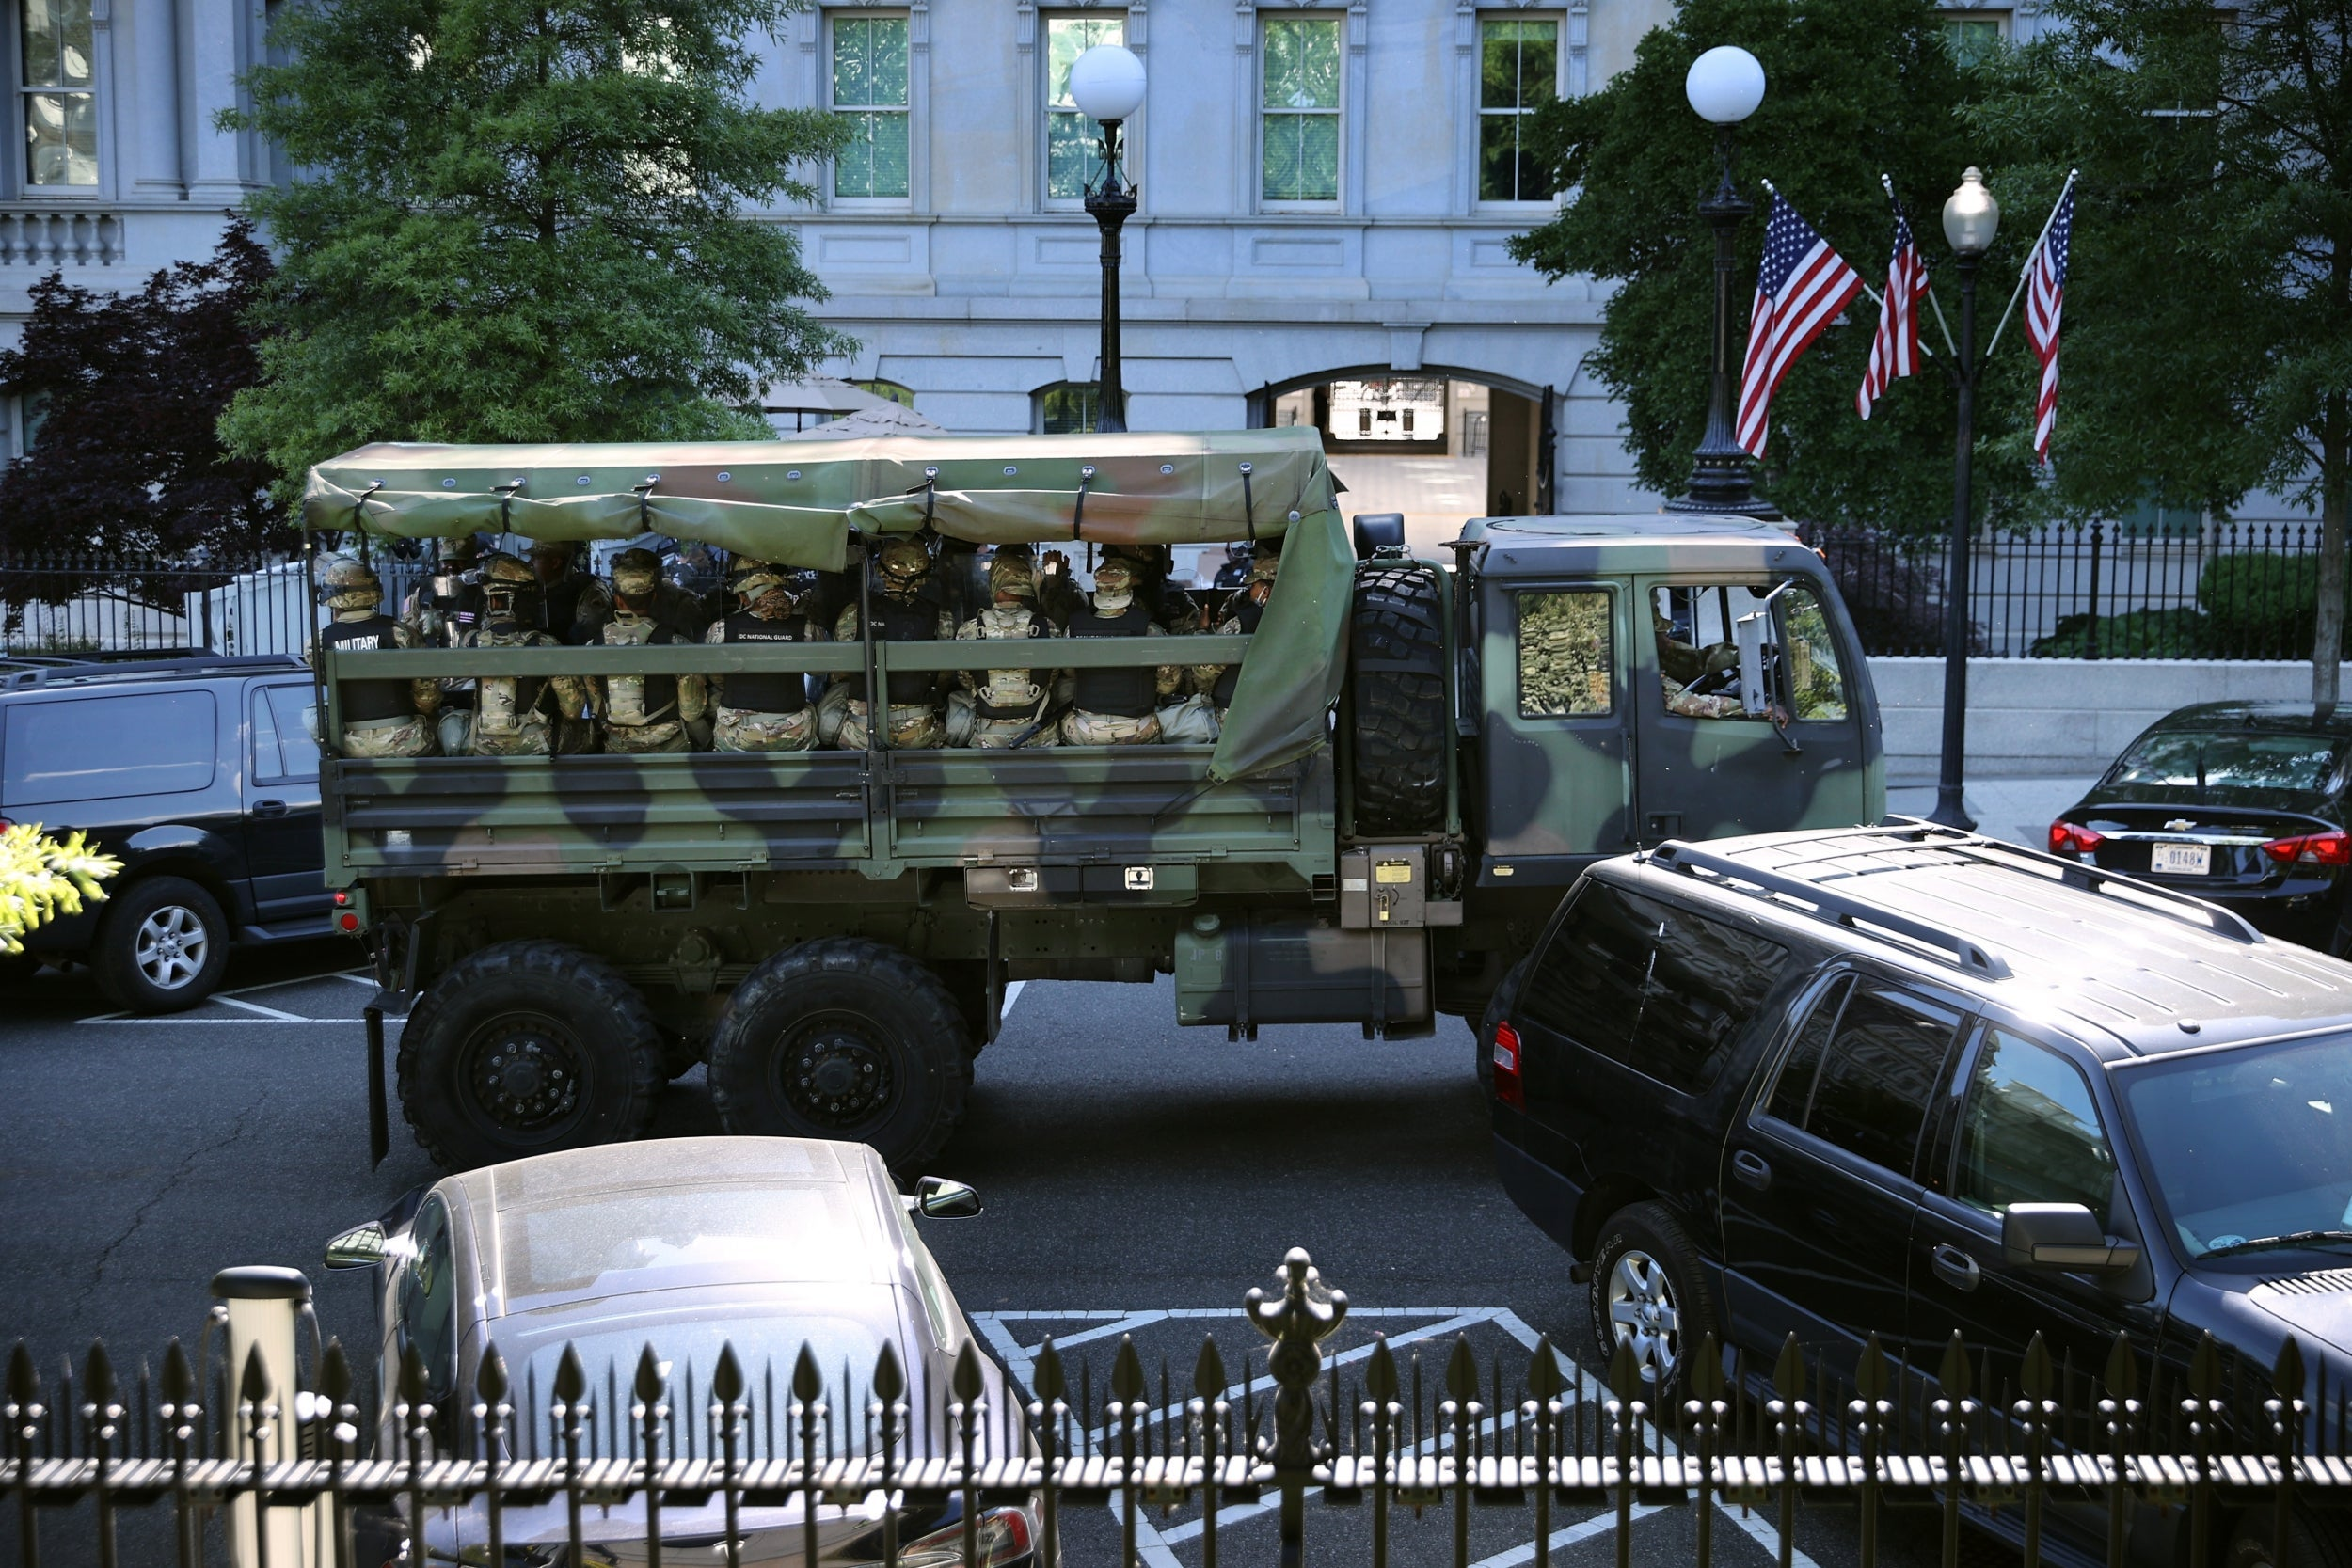 Military trucks seen arriving at White House after Trump tells governors to be tough on protests